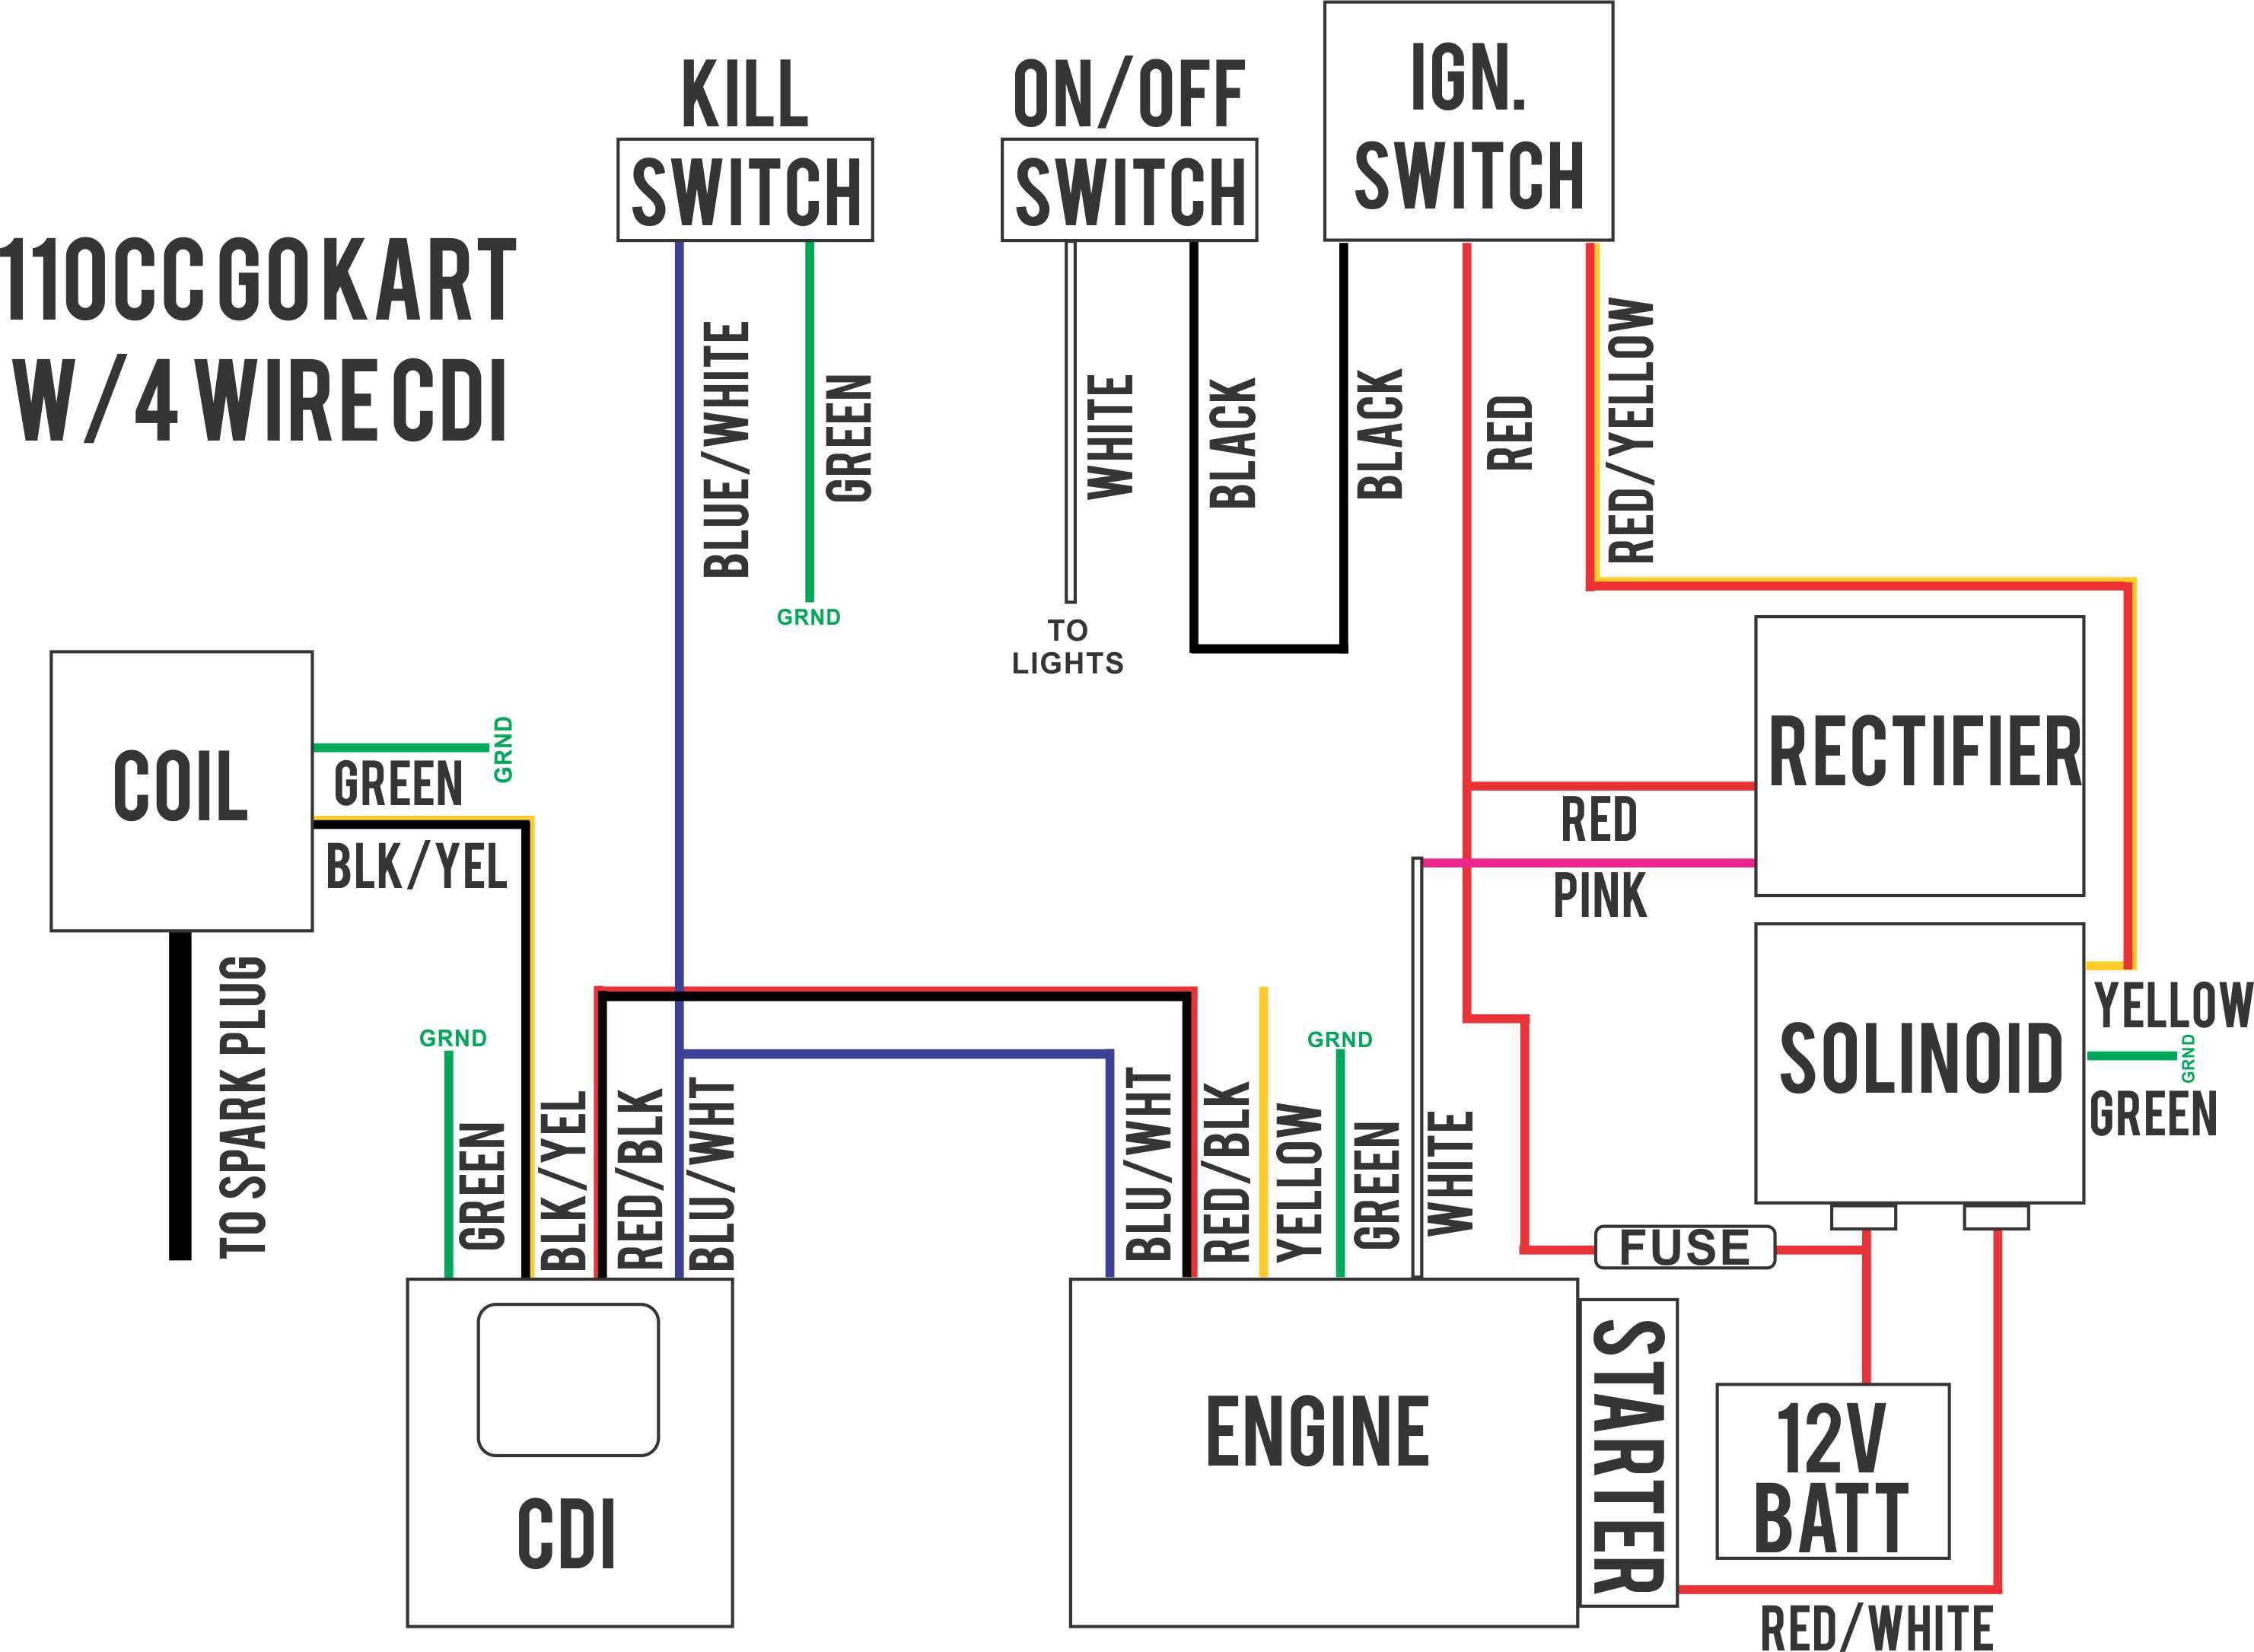 wiring diagram yamaha bws diy enthusiasts wiring diagrams u2022 rh wiringdiagramnetwork today wiring diagram yamaha bws wiring diagram for yamaha zuma